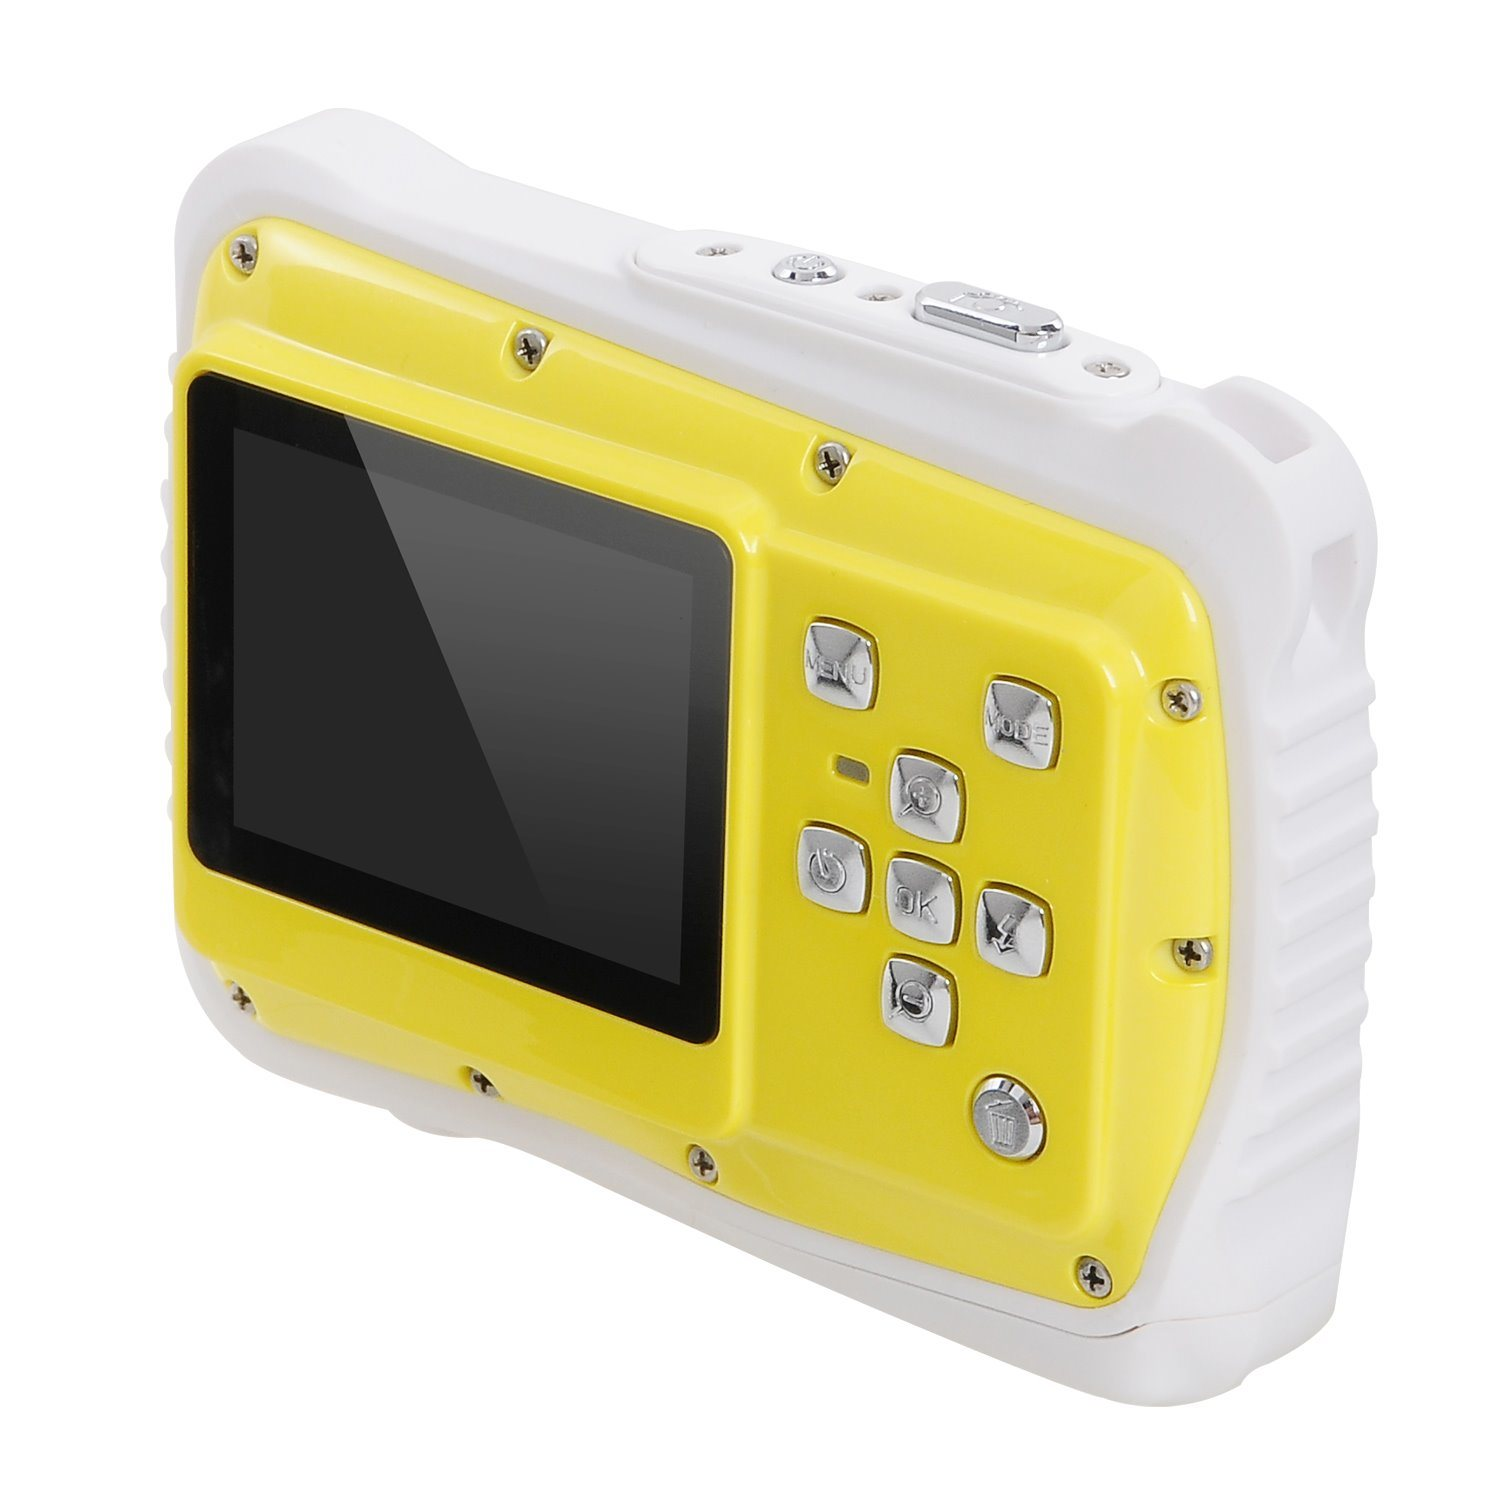 12MP 720p 3m Waterproof Mini Digital Camera for Children